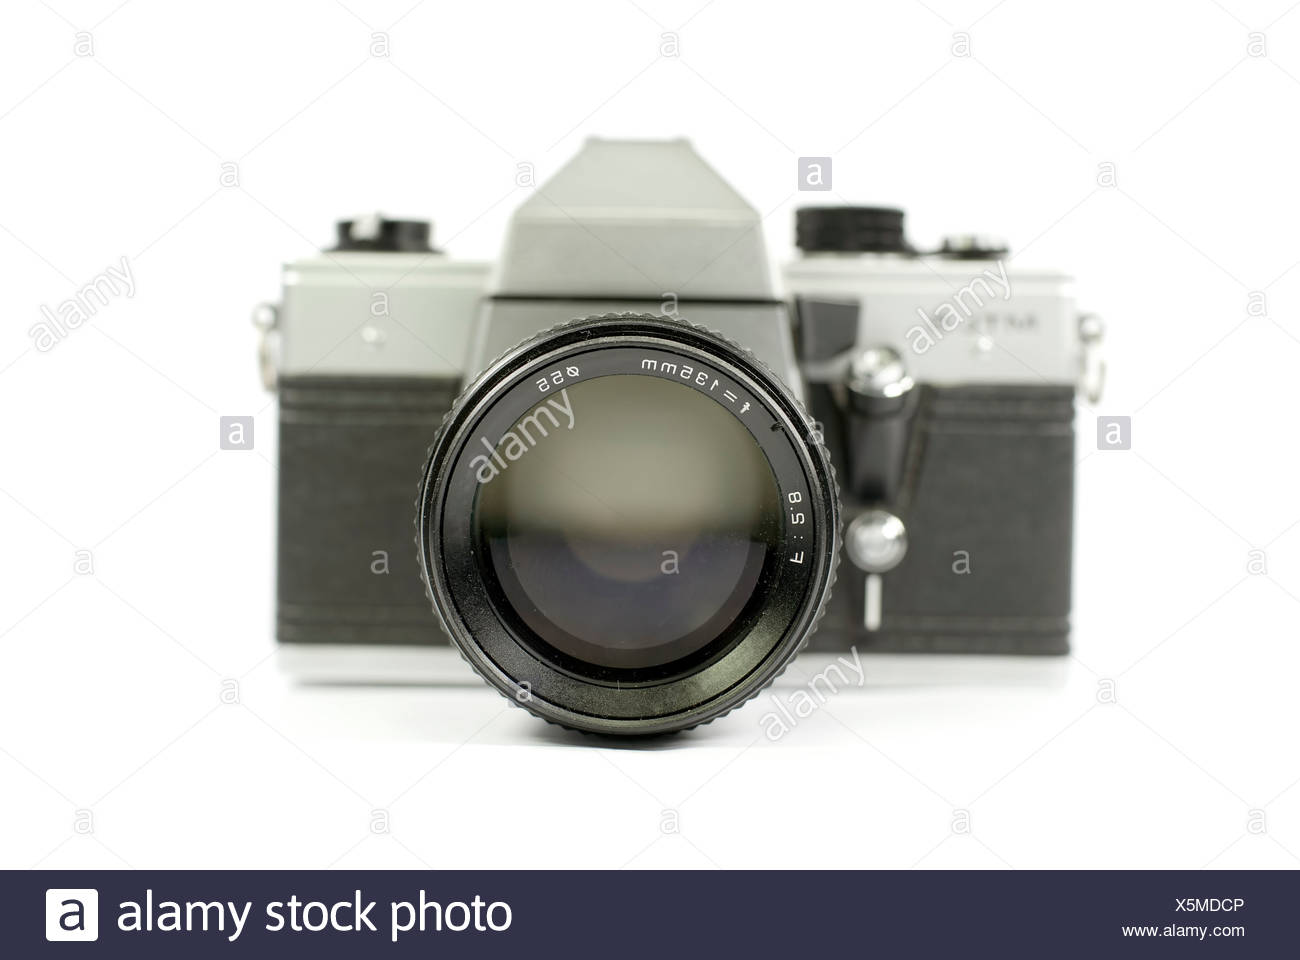 Front view of an old film camera with its telephoto lens